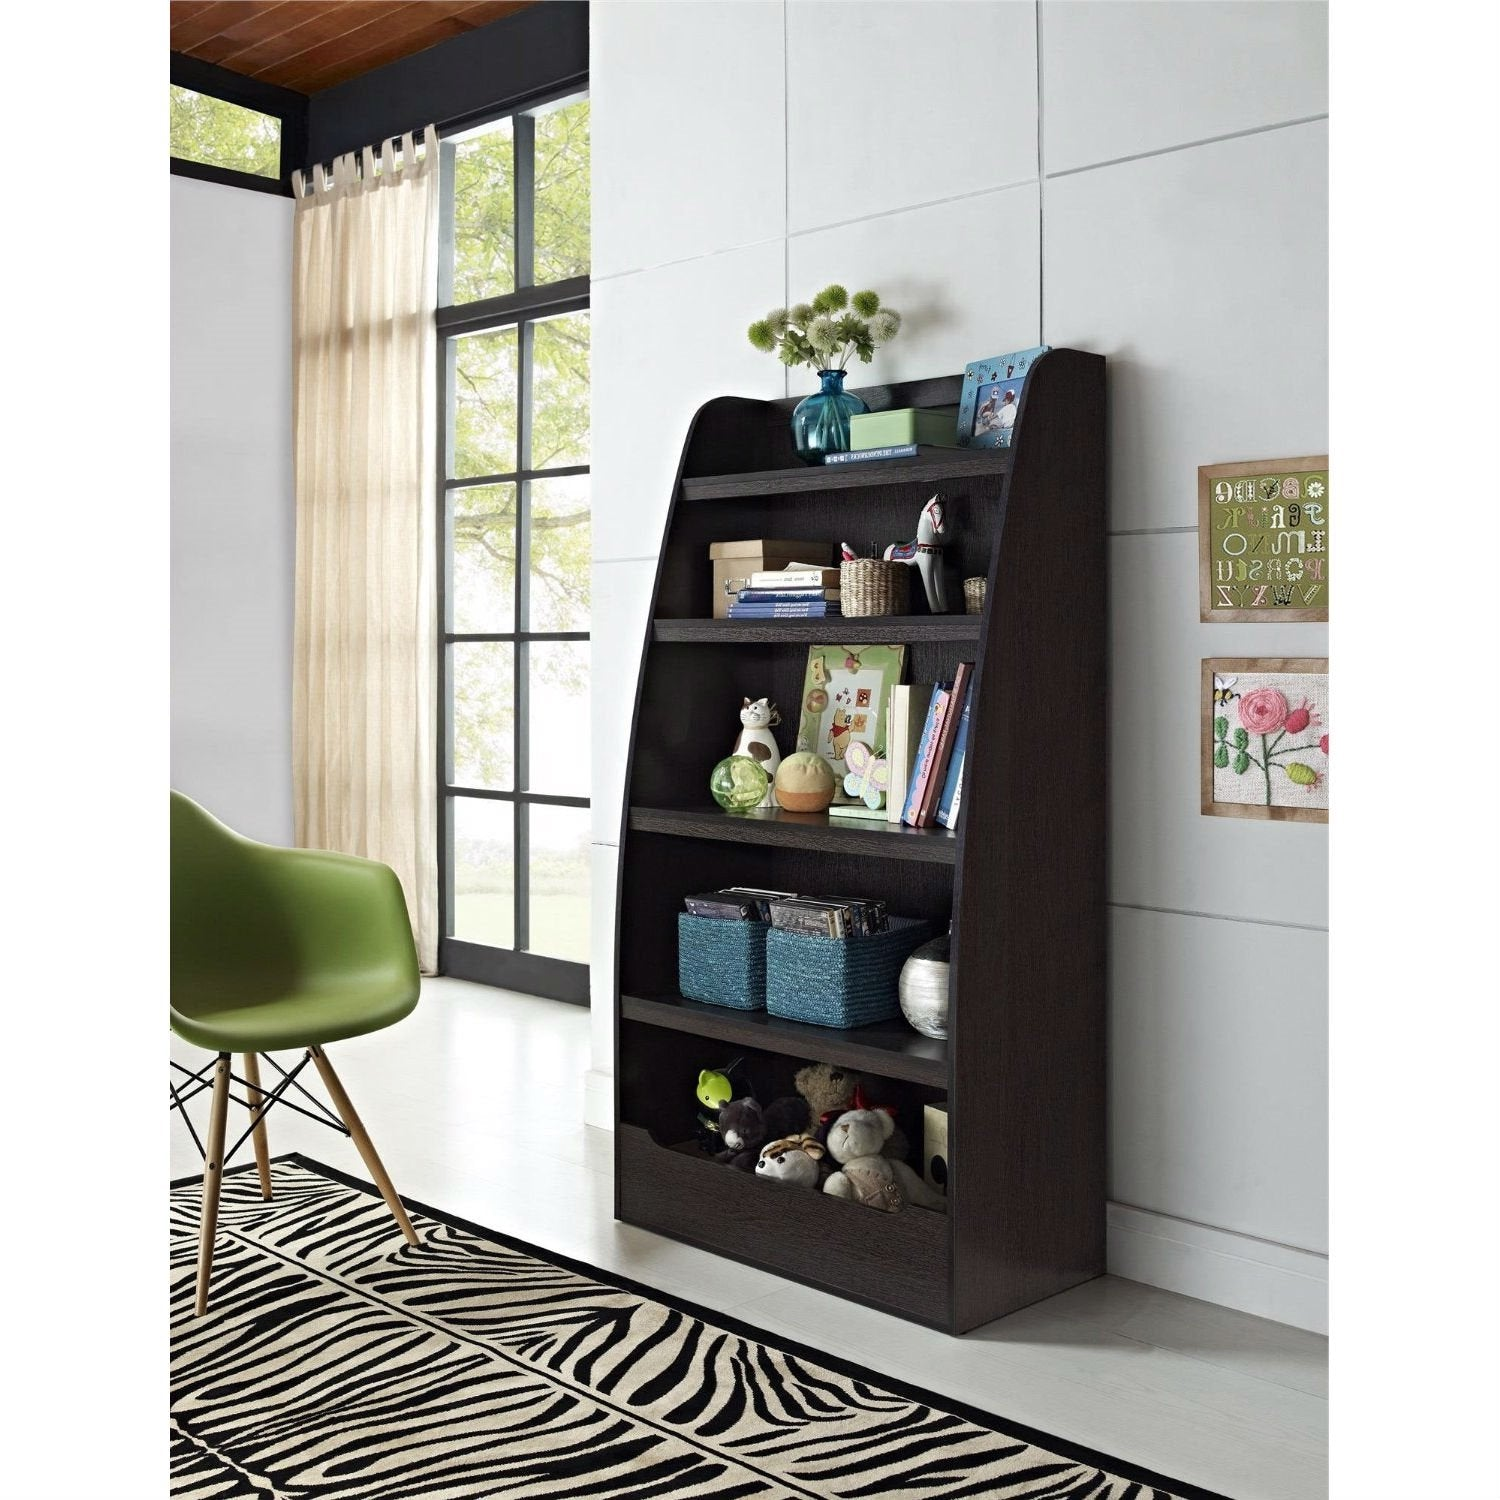 4-Shelf Bookcase in Espresso Wood Finish Childs Bedroom